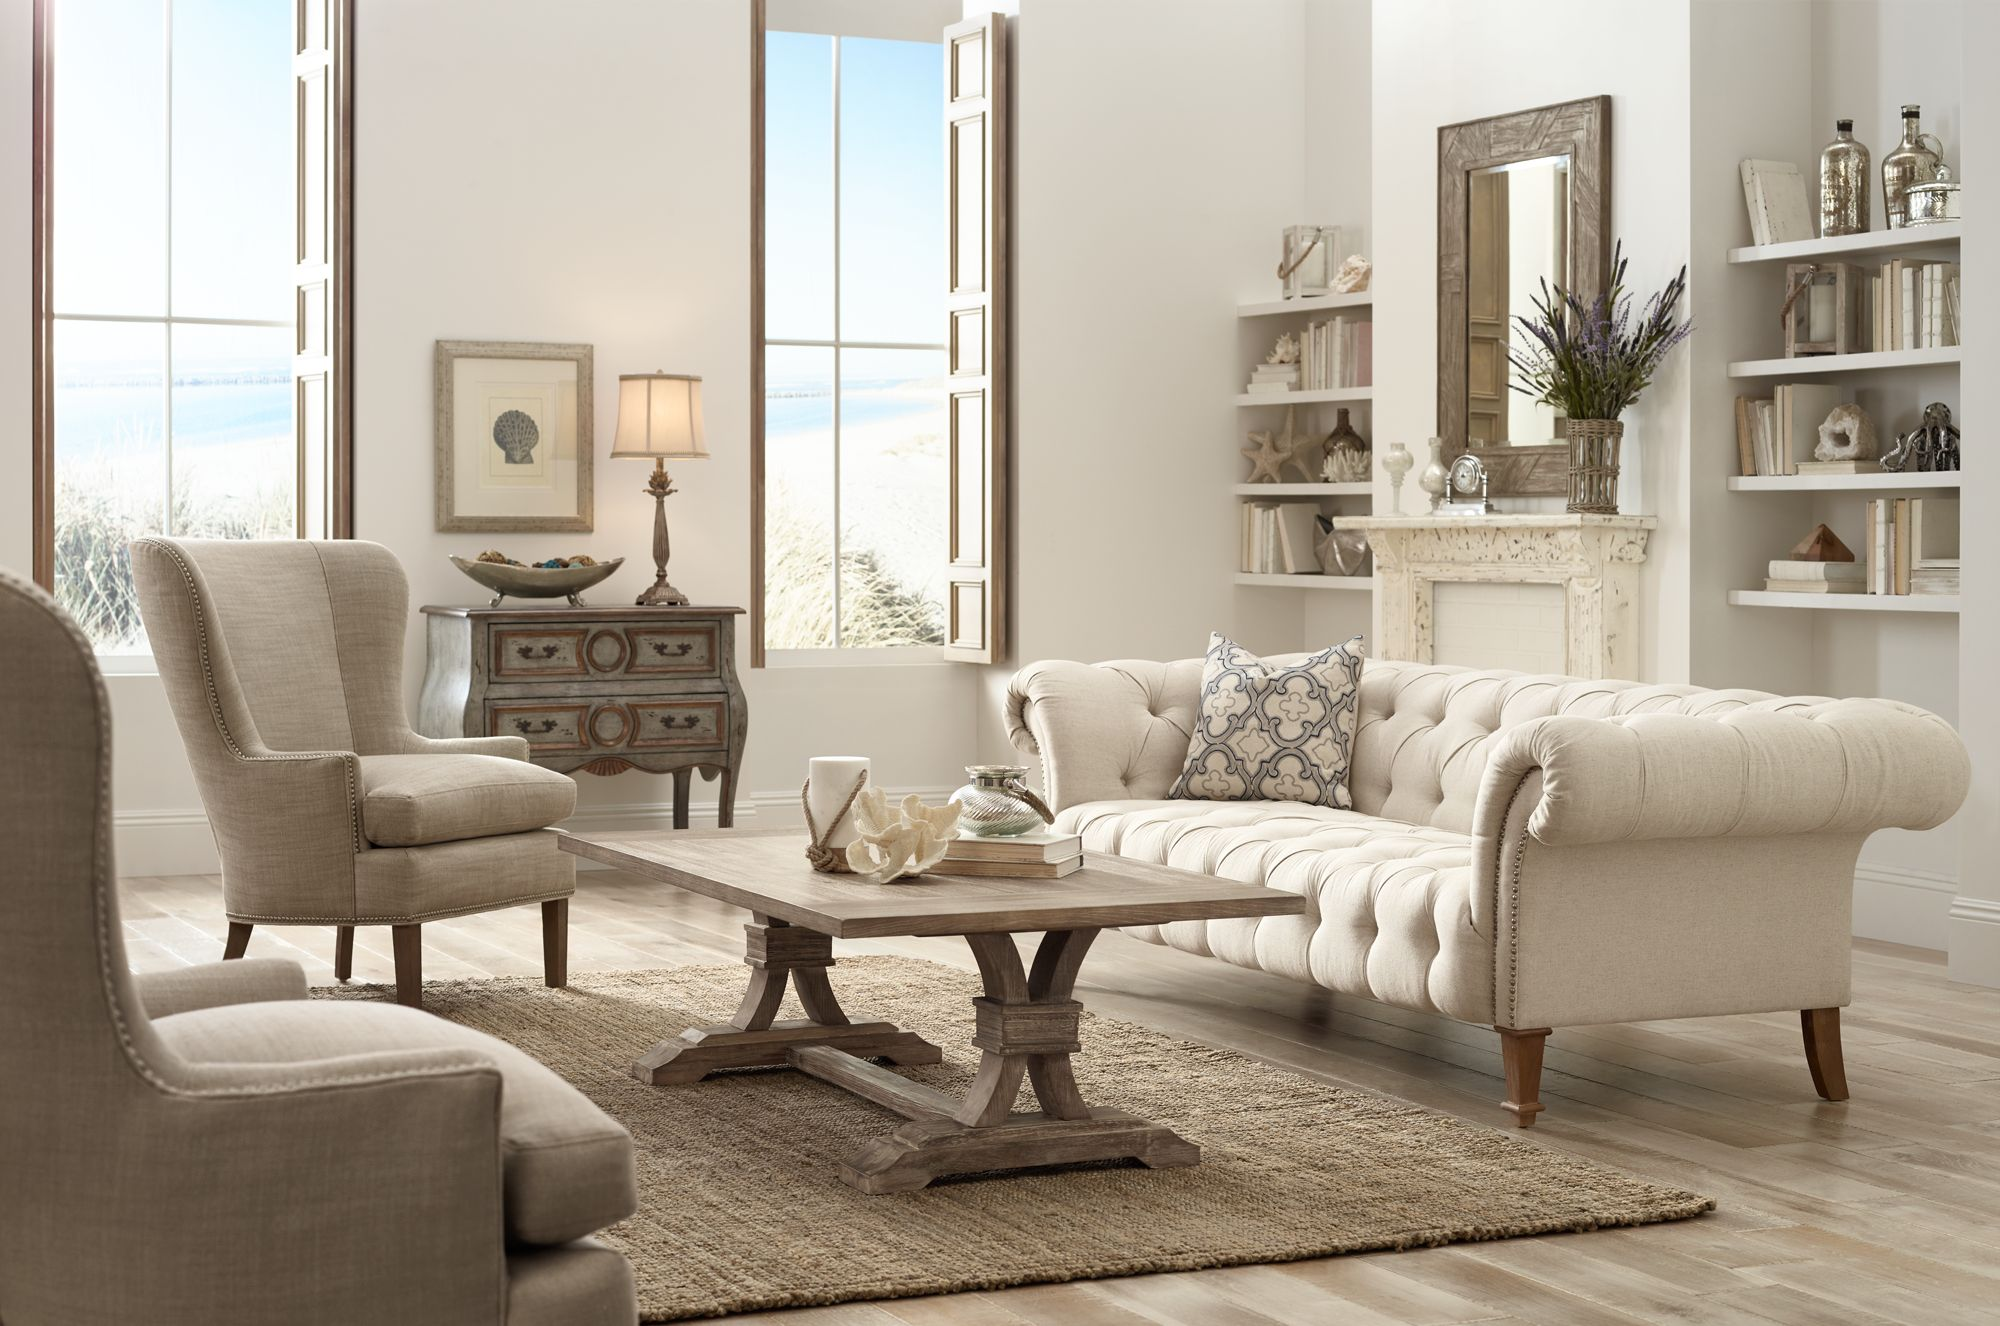 An Over Sized Tufted Sofa Is The Centerpiece Of This Comfortable Living Room .